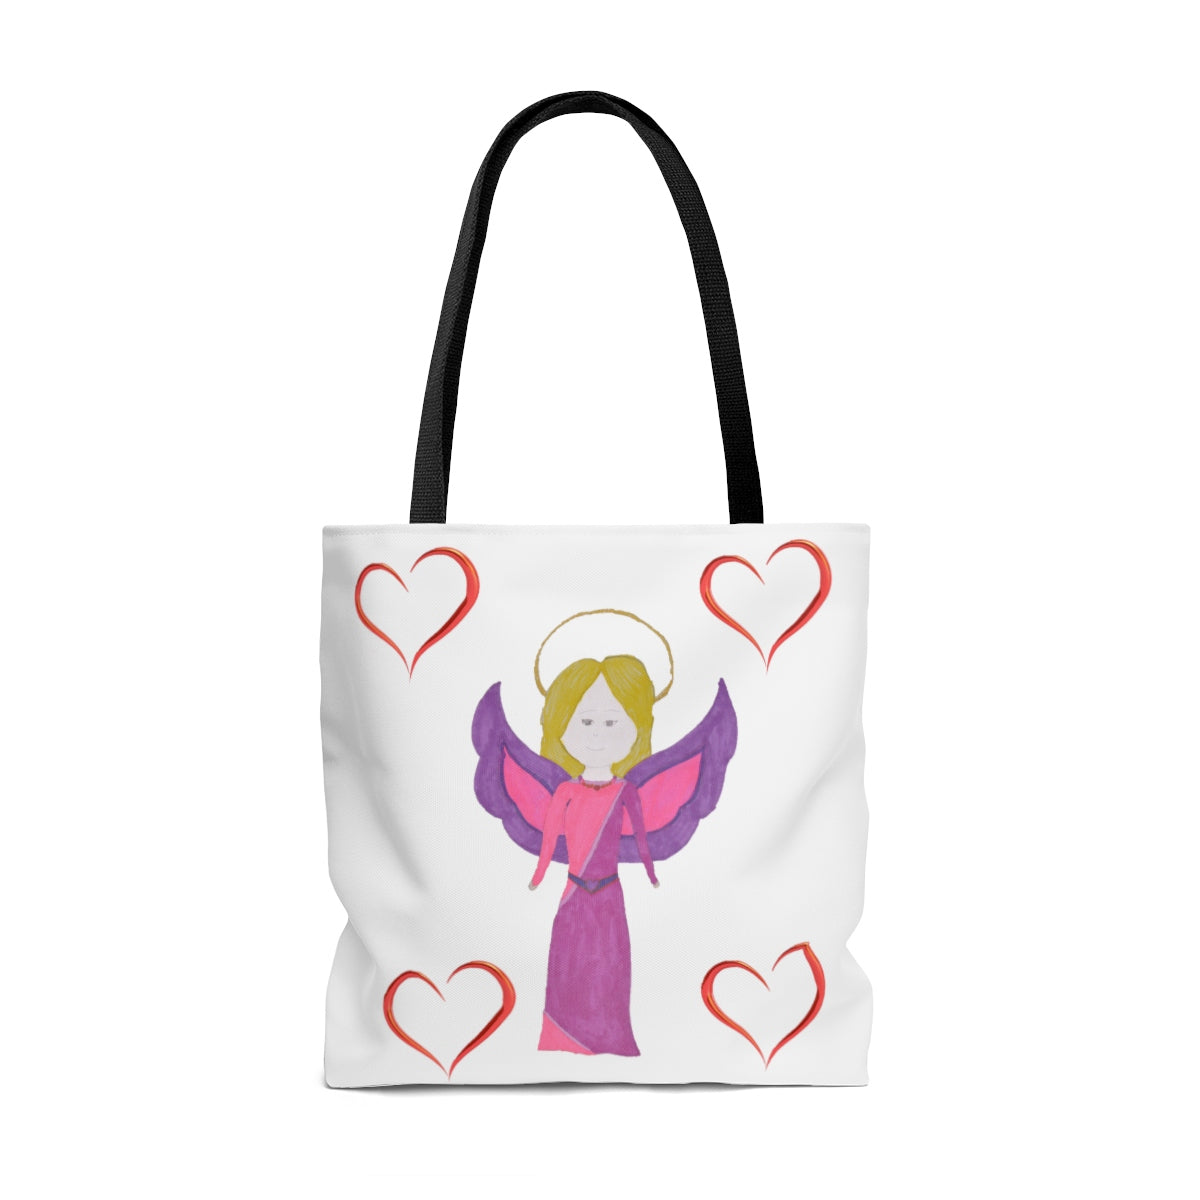 Angel AOP Tote Bag By Lai Lai